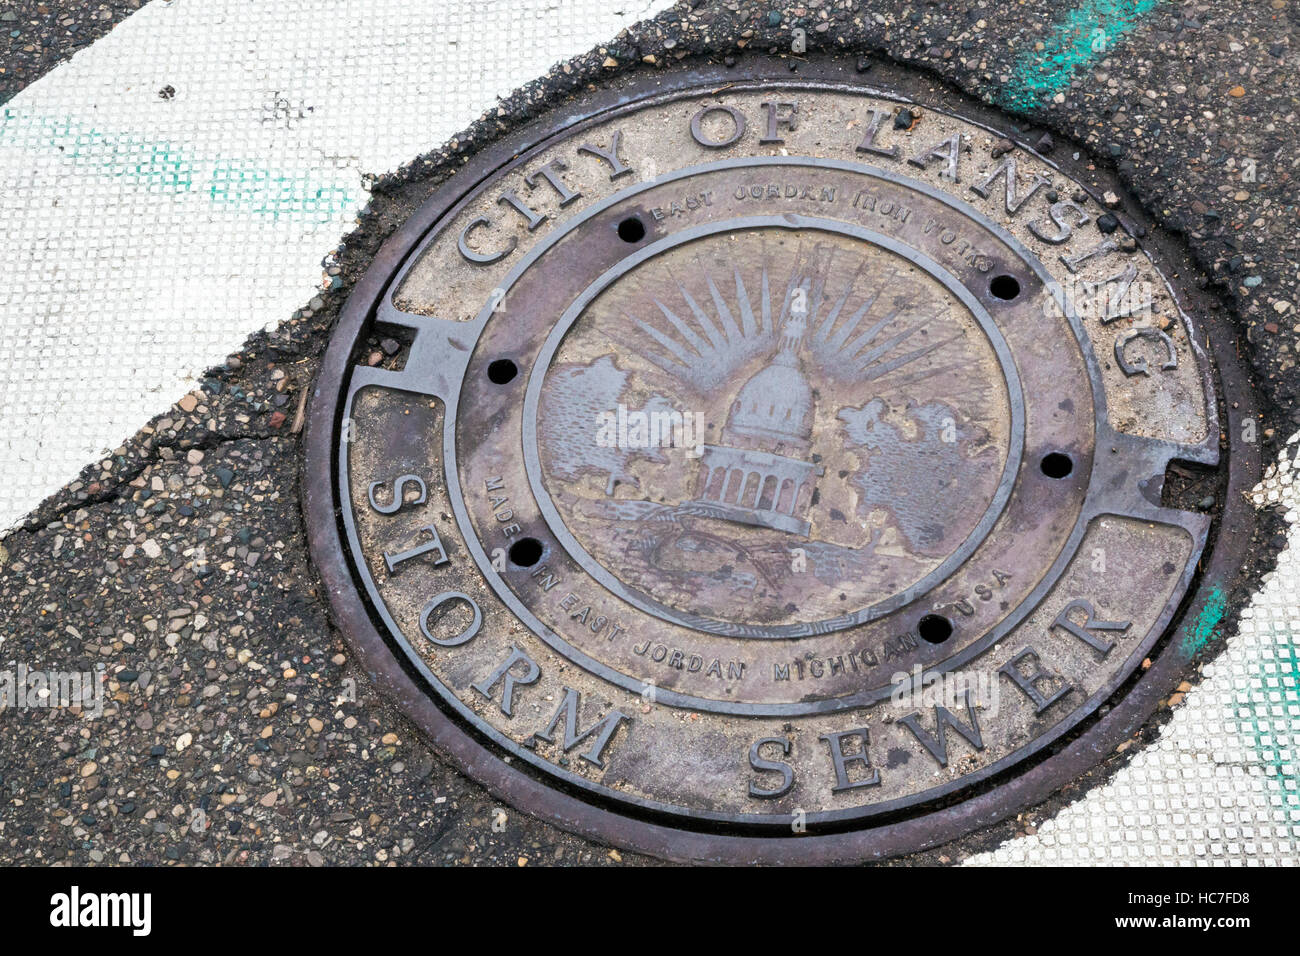 Lansing, Michigan - Storm sewer manhole covers in Michigan's capital city carry the image of the state's - Stock Image